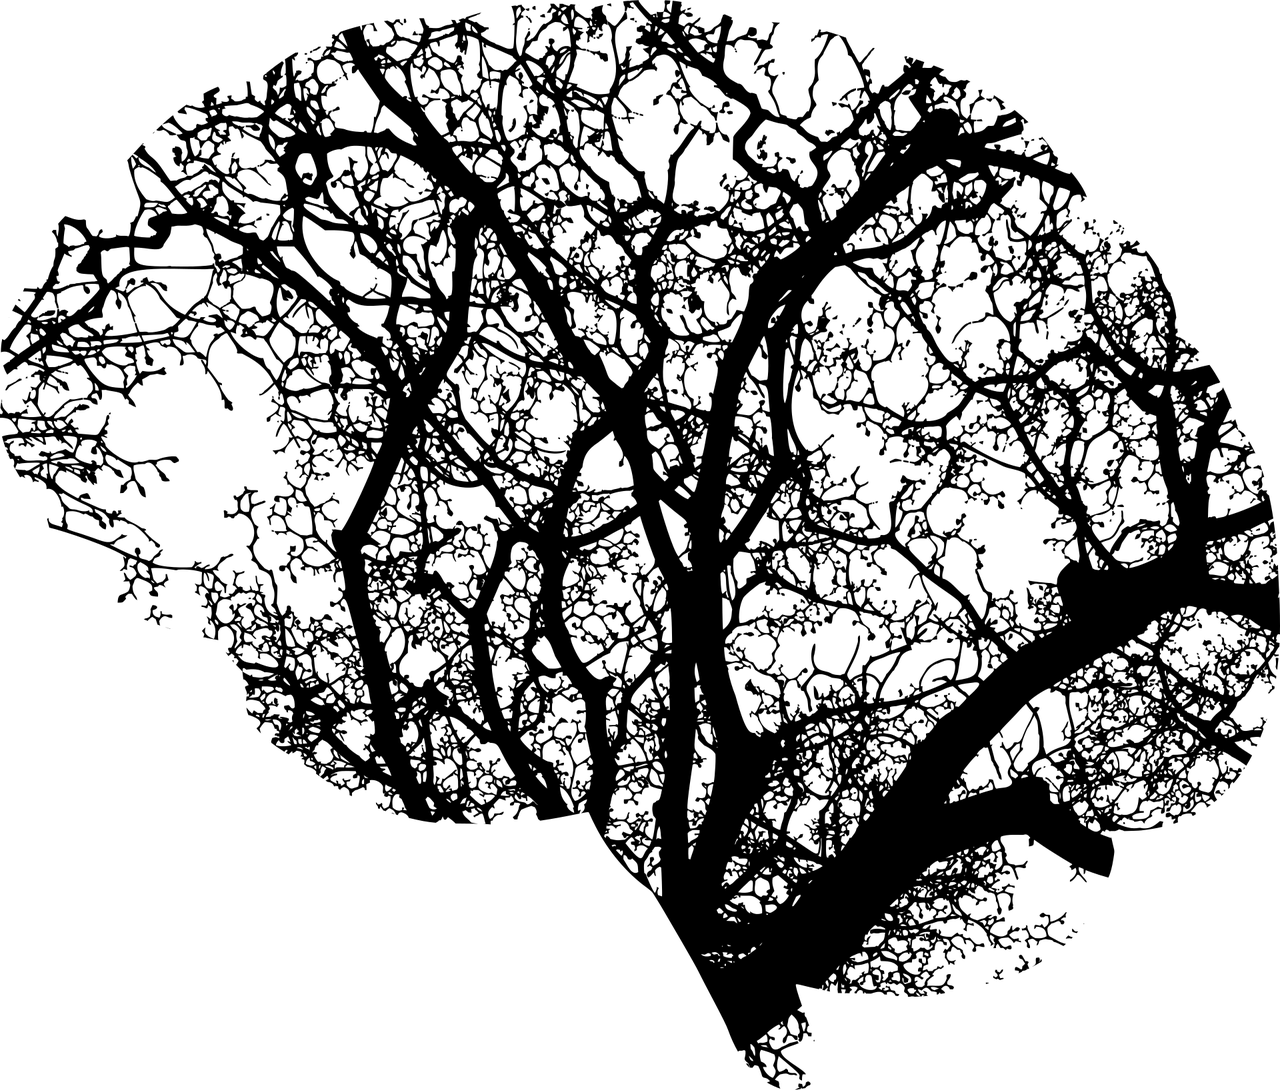 """[Black and white image of the brain. The black lines represent the many different """"connections"""" our brain uses in order to communicate and function.]"""